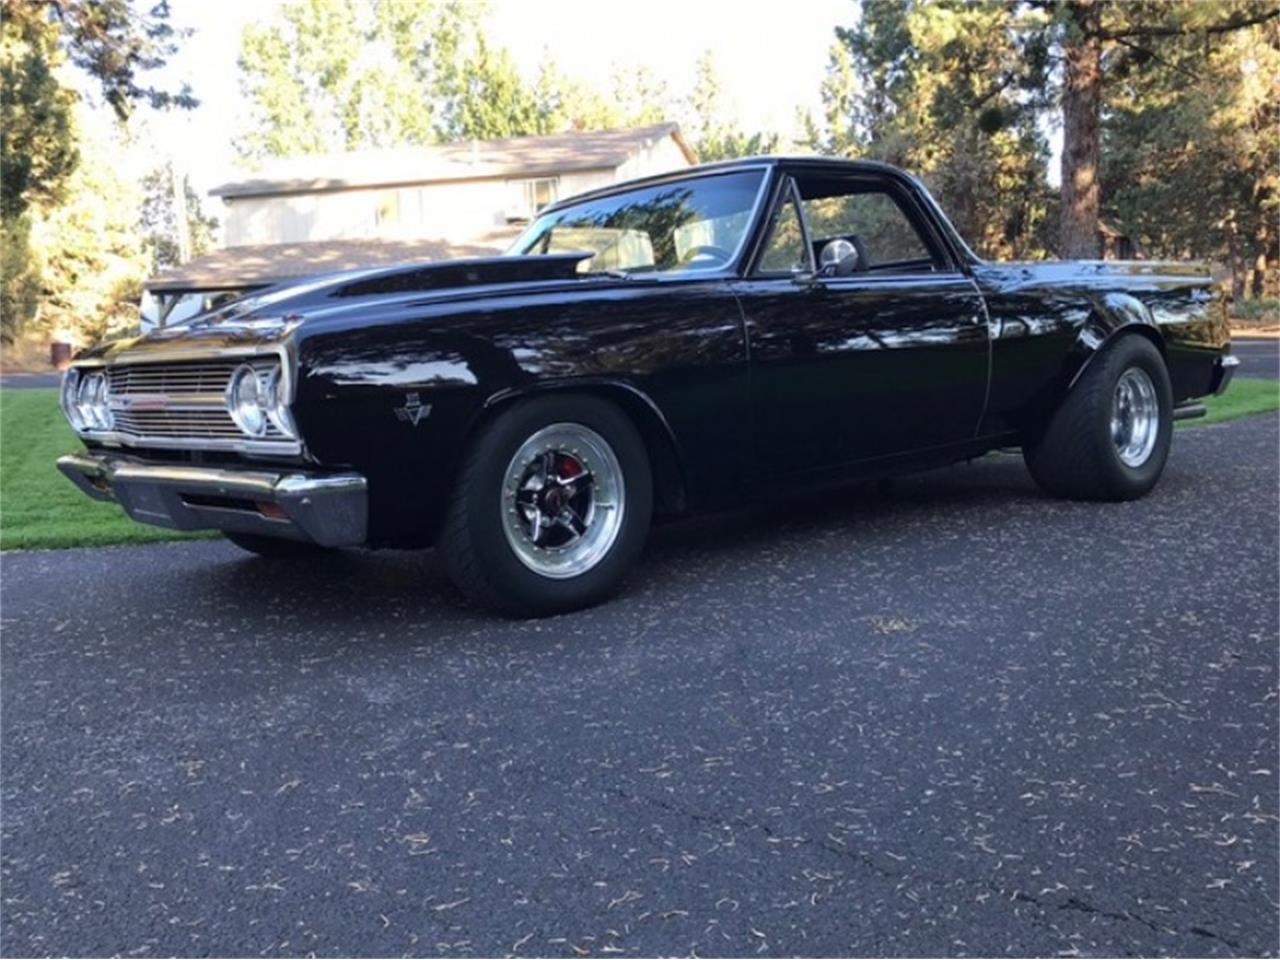 Large Picture of '65 Chevrolet El Camino Auction Vehicle Offered by Motorsport Auction Group - QP1D